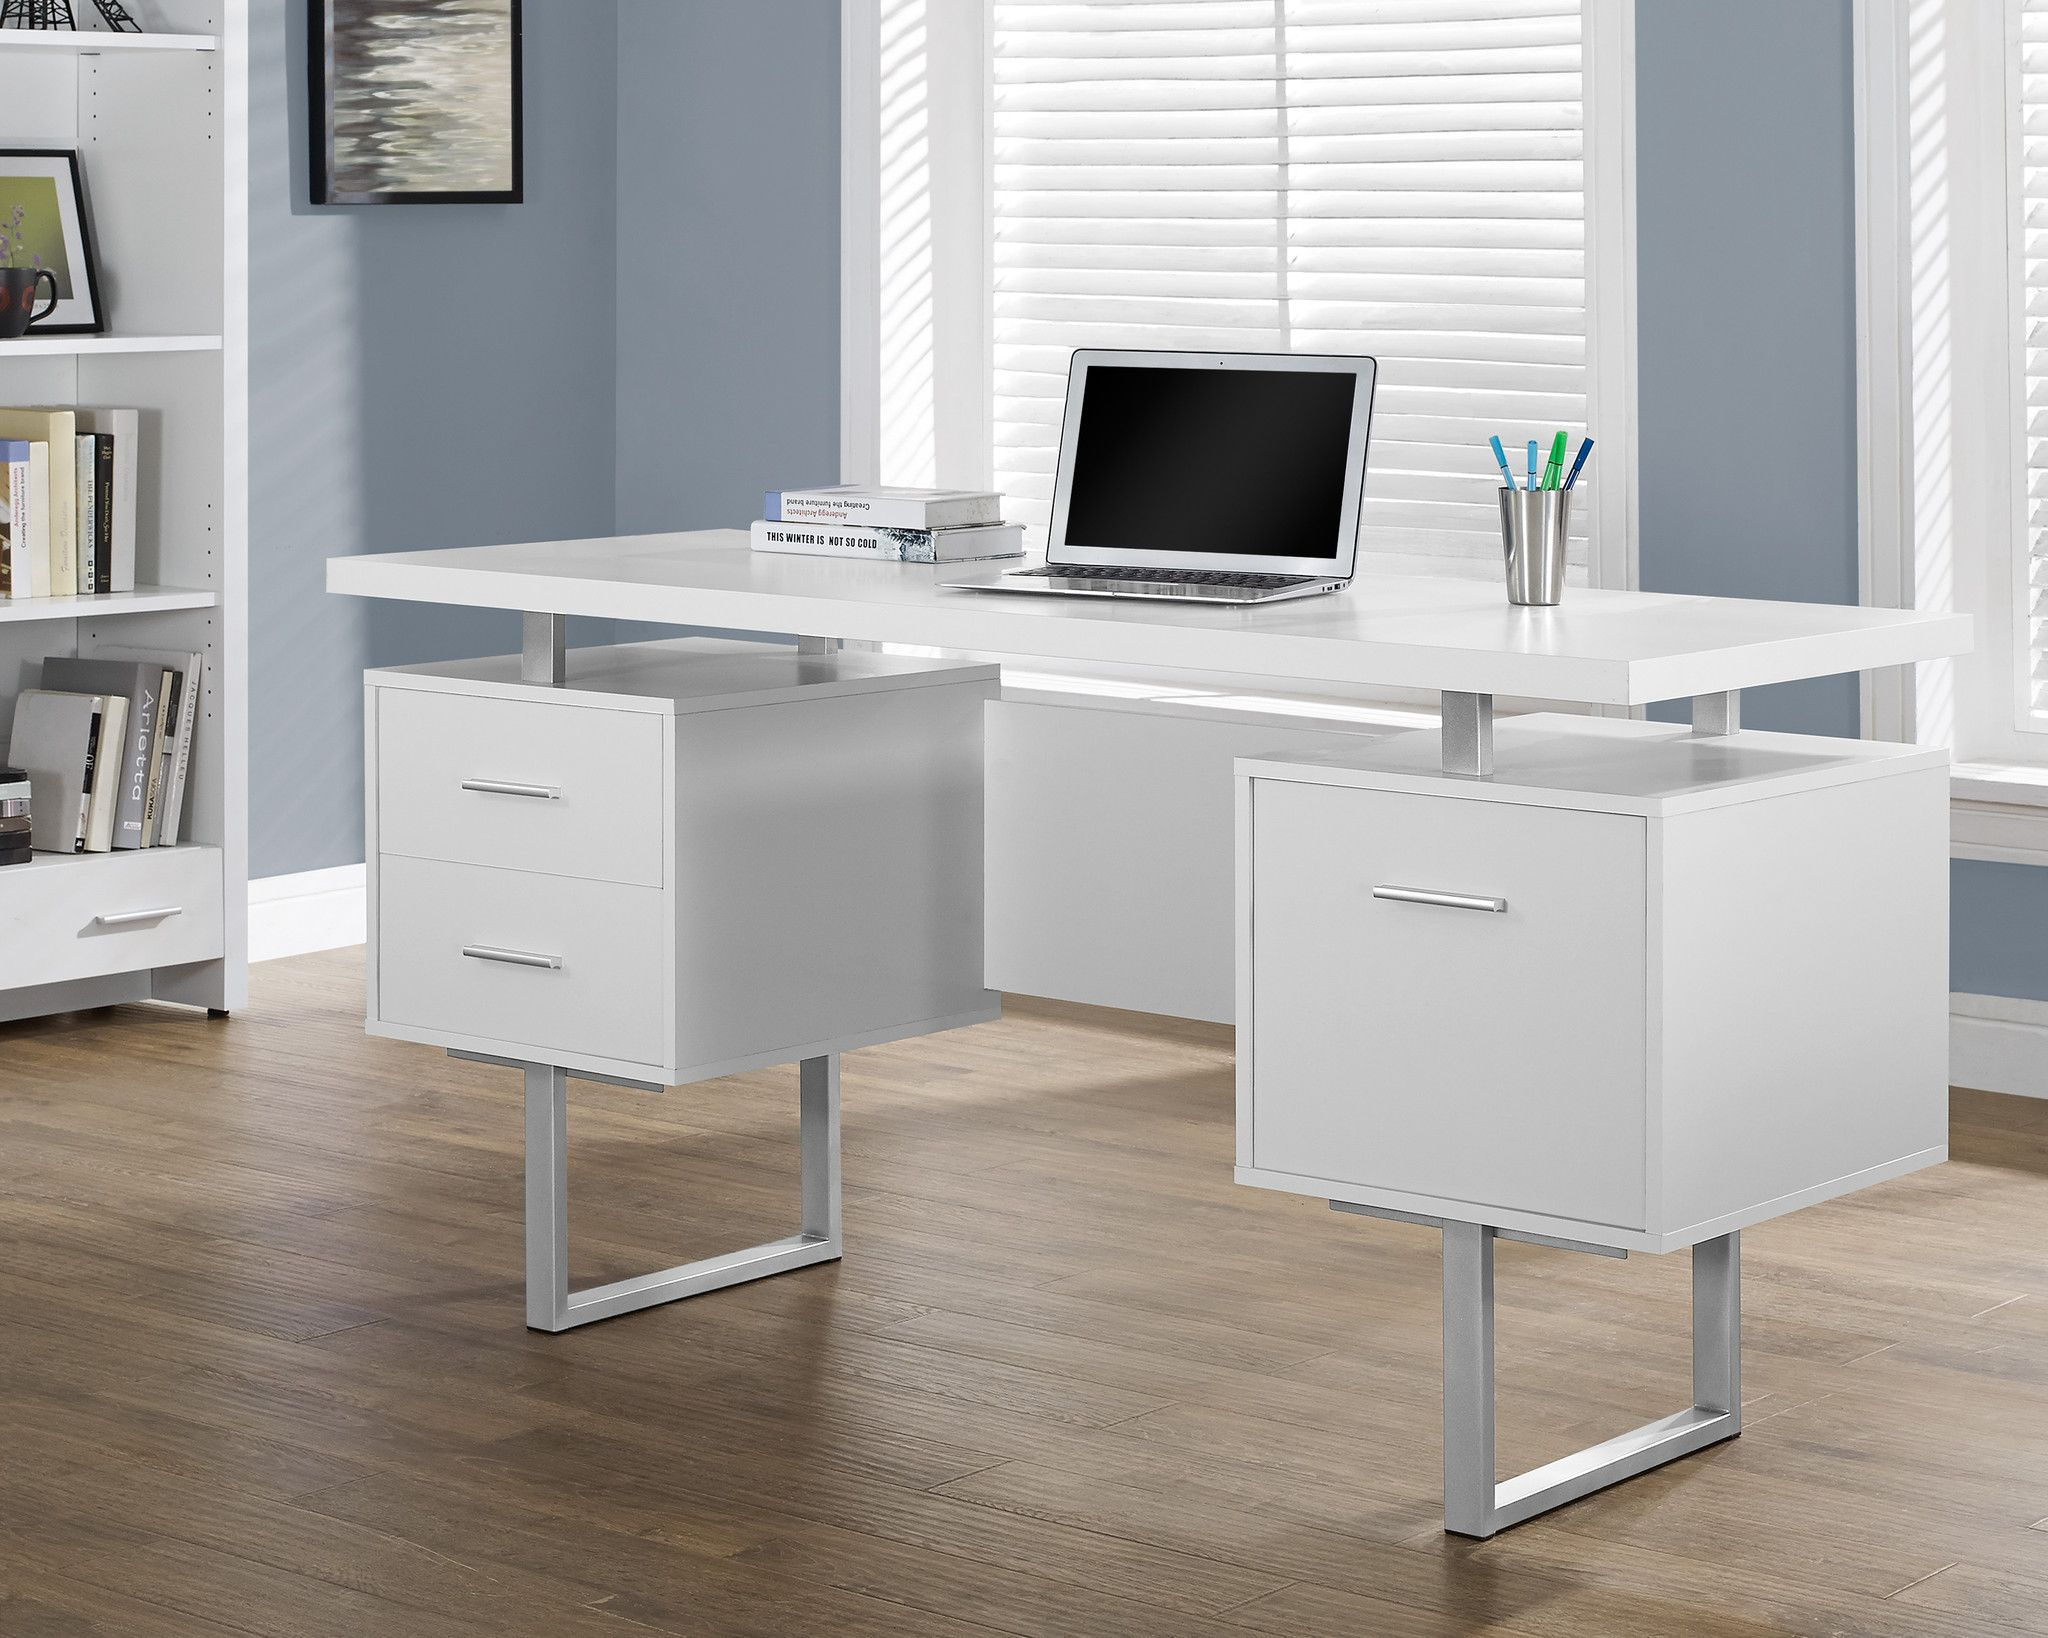 Computer Desk 60 L White Silver Metal White Desk With Drawers White Desk Office Metal Office Desk